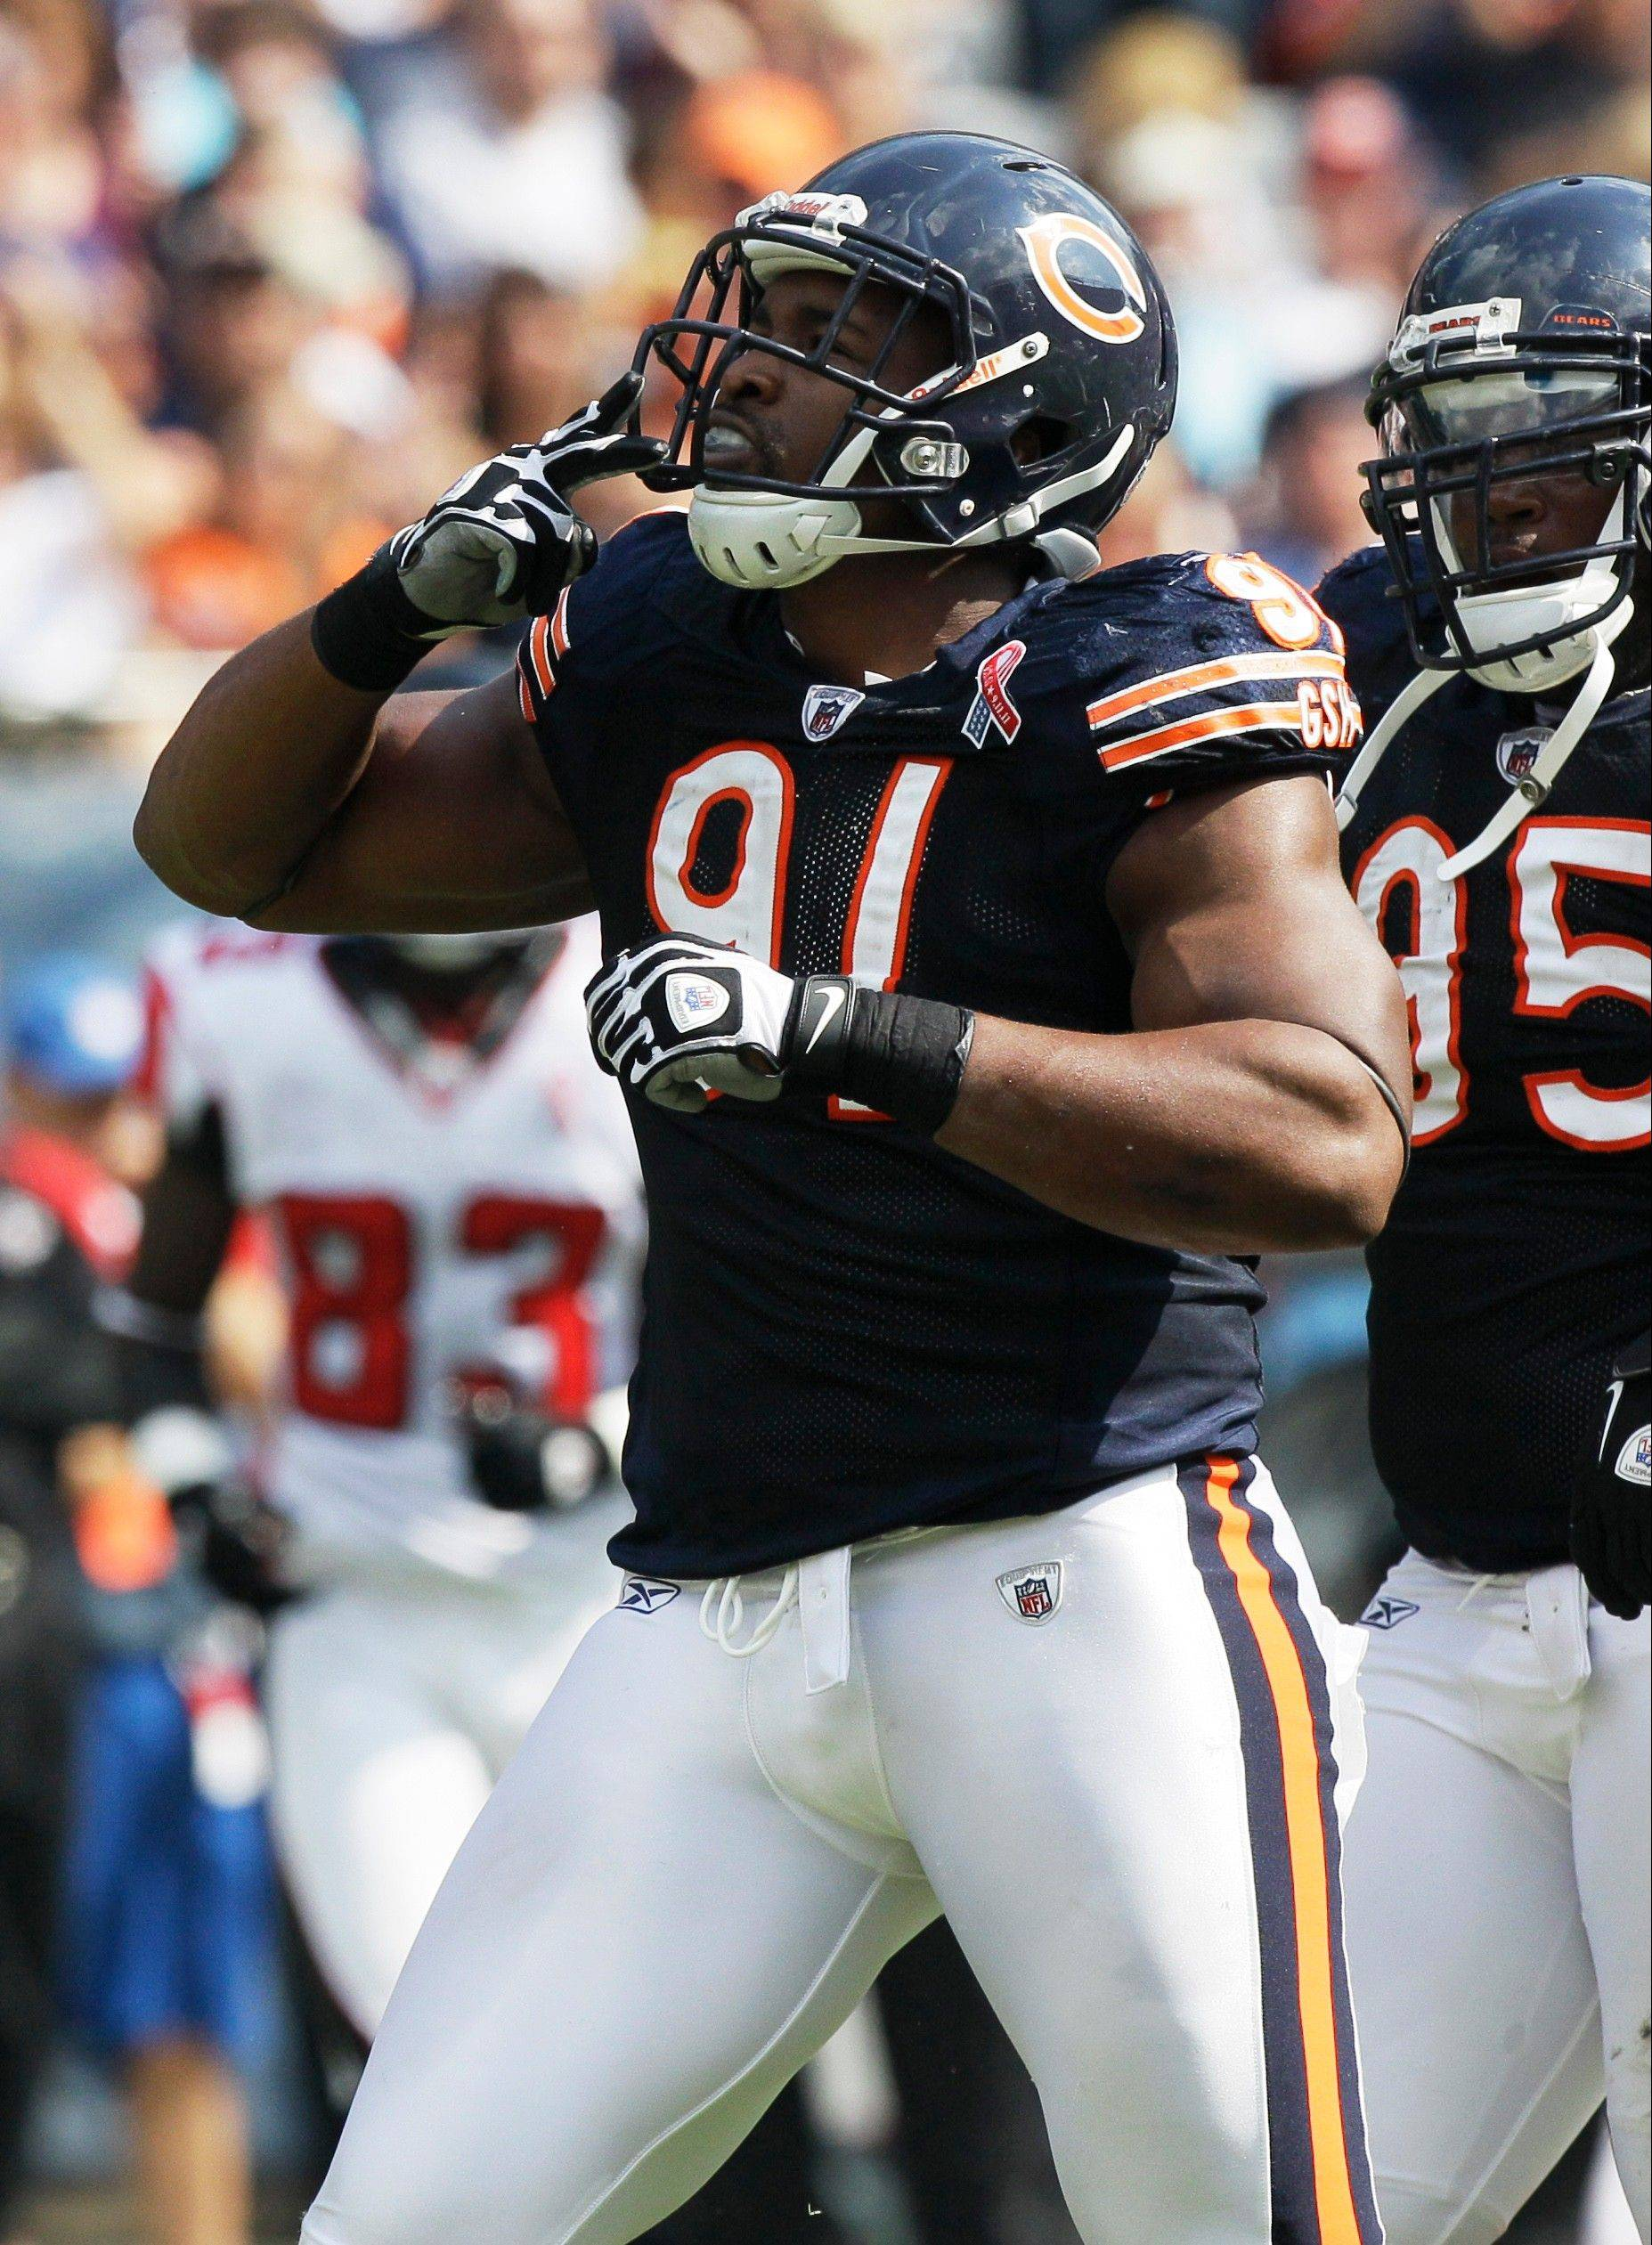 Bears welcome back Okoye at defensive tackle